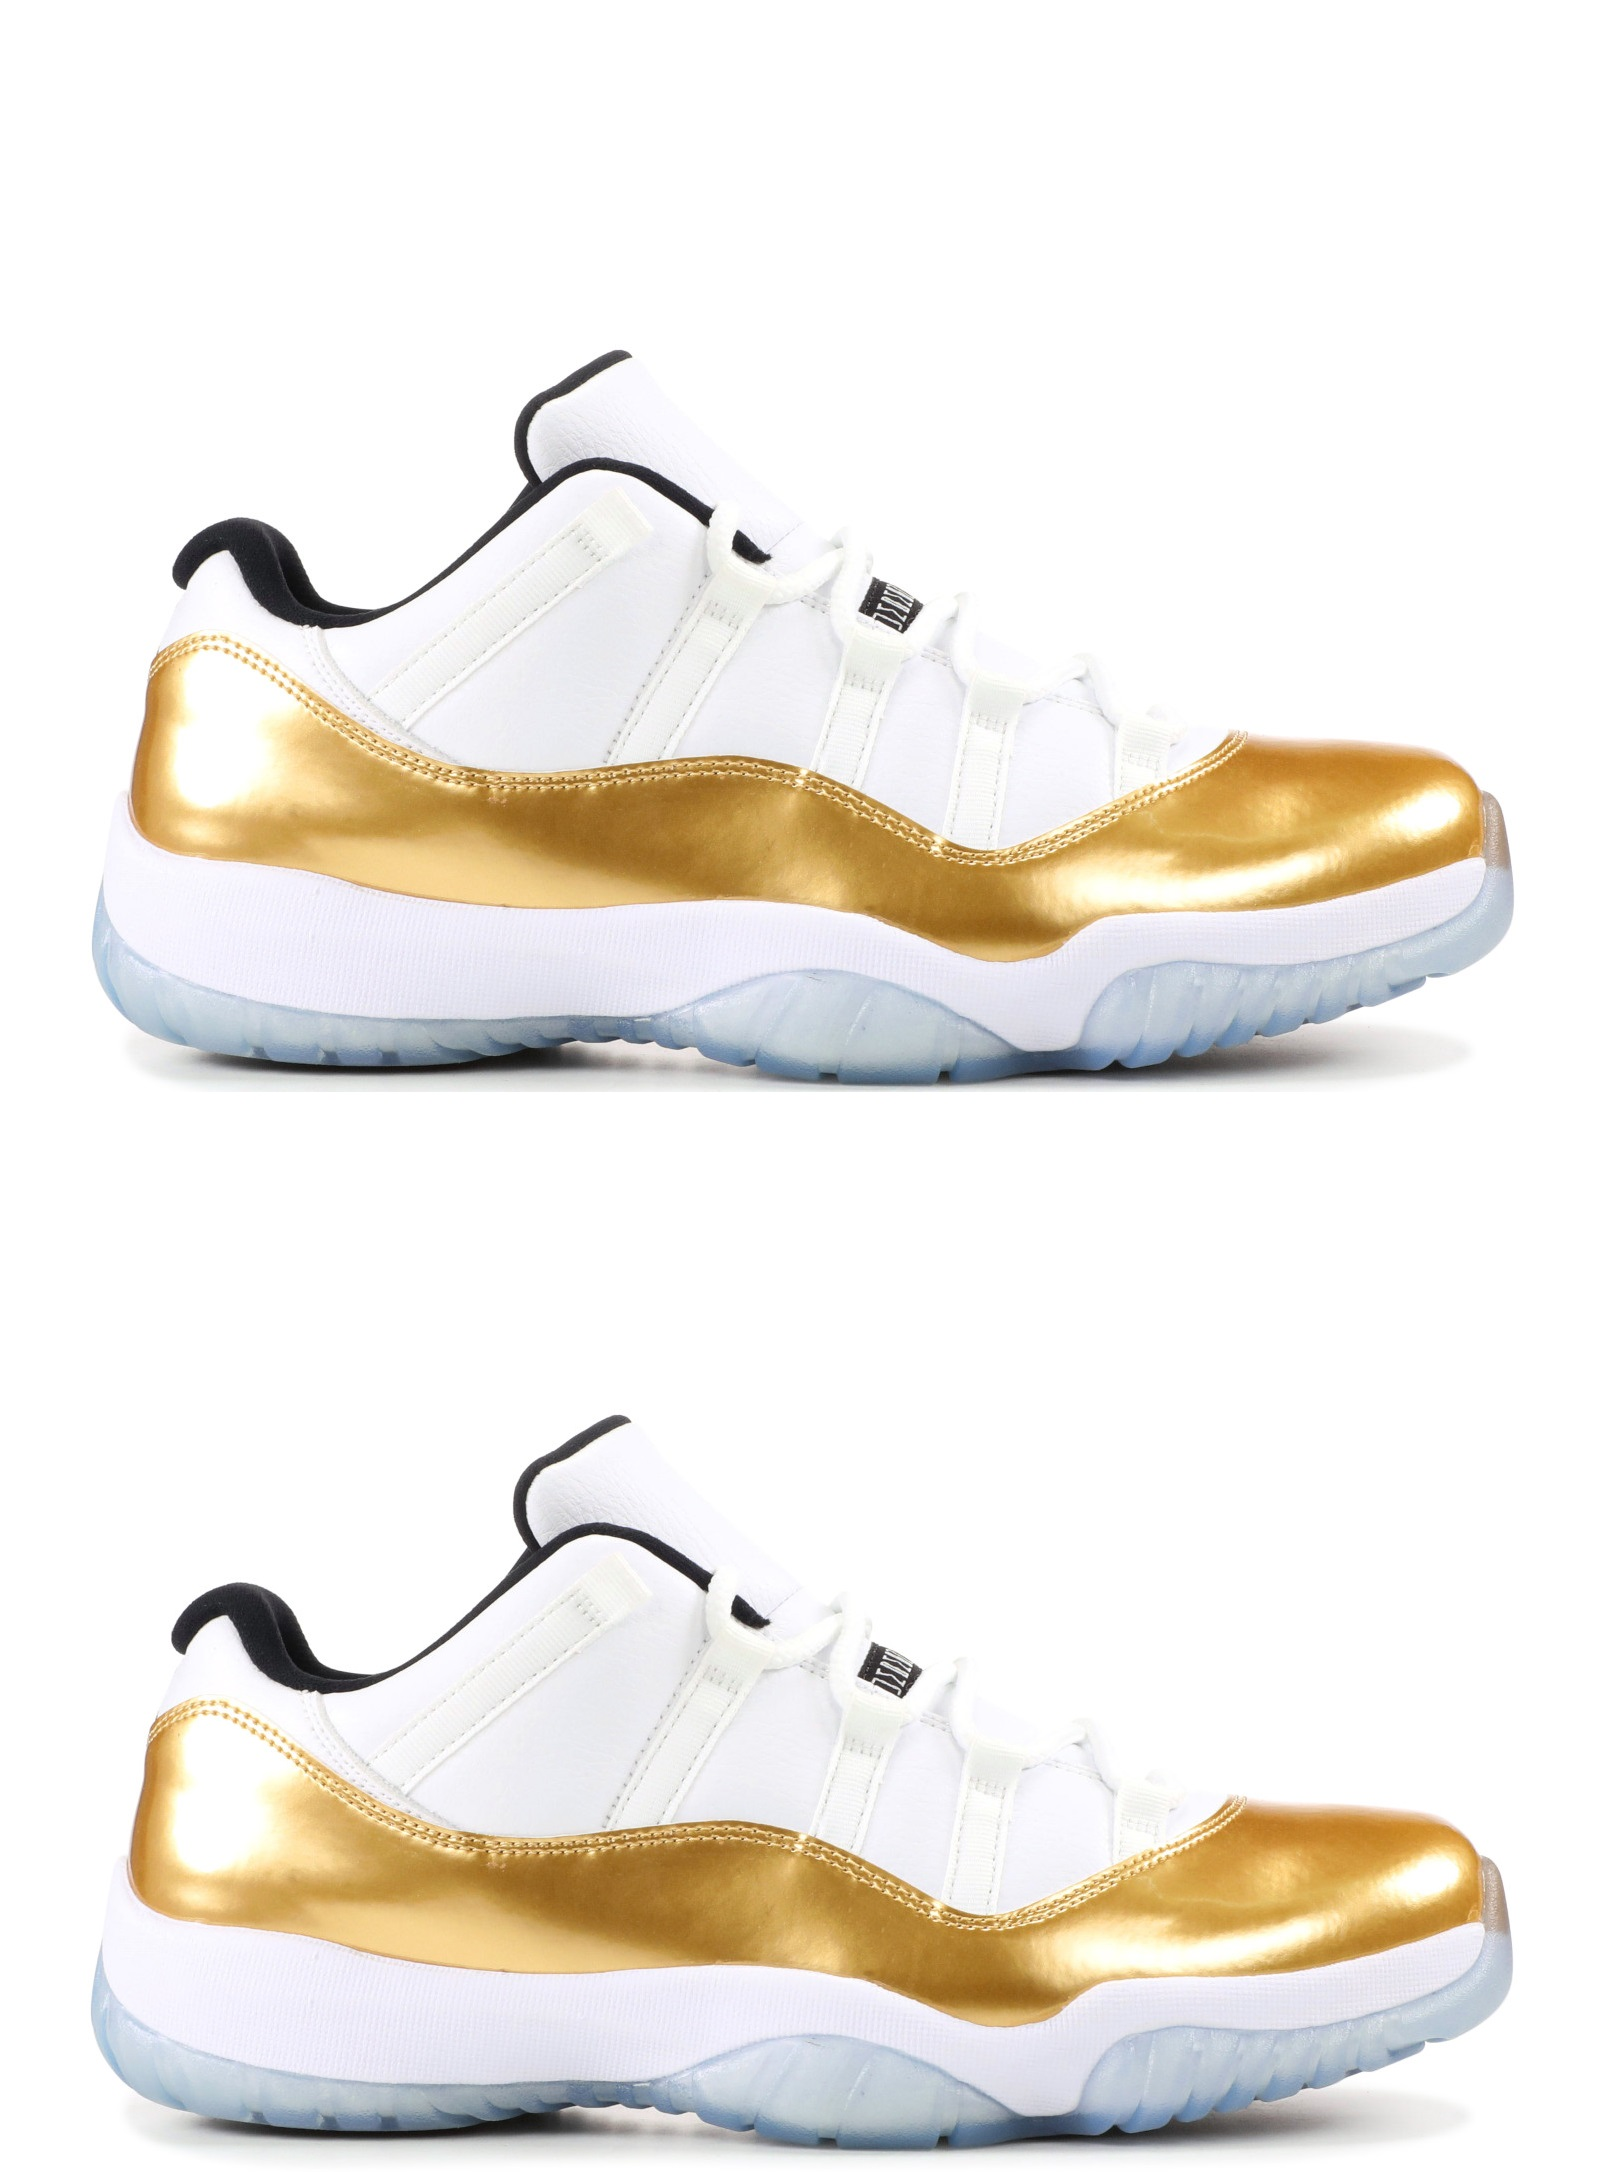 Air Jordan 11 His & Her Low Closing Ceremony Pack #1